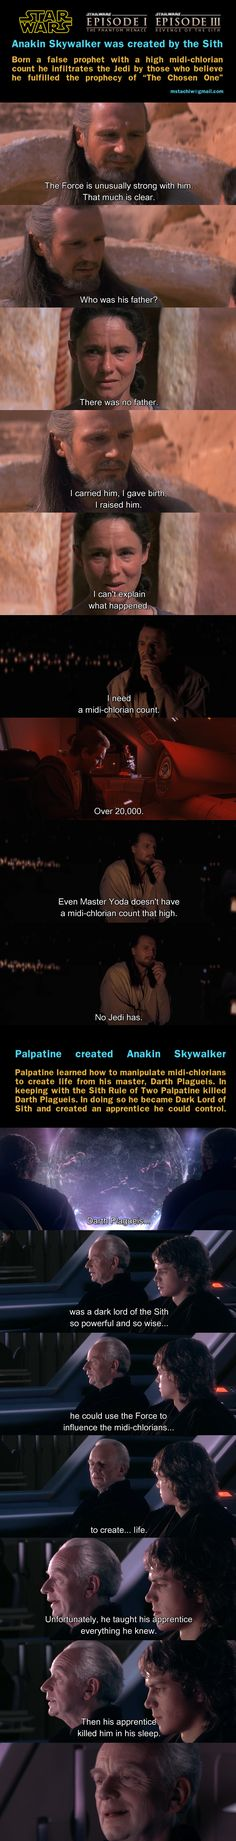 """If the prequels were made with this theory in mind, we would have this epic reveal moment, that could rival the one at the end of ESB. And """"Attack of the Clones"""" would have a much deeper meaning."""